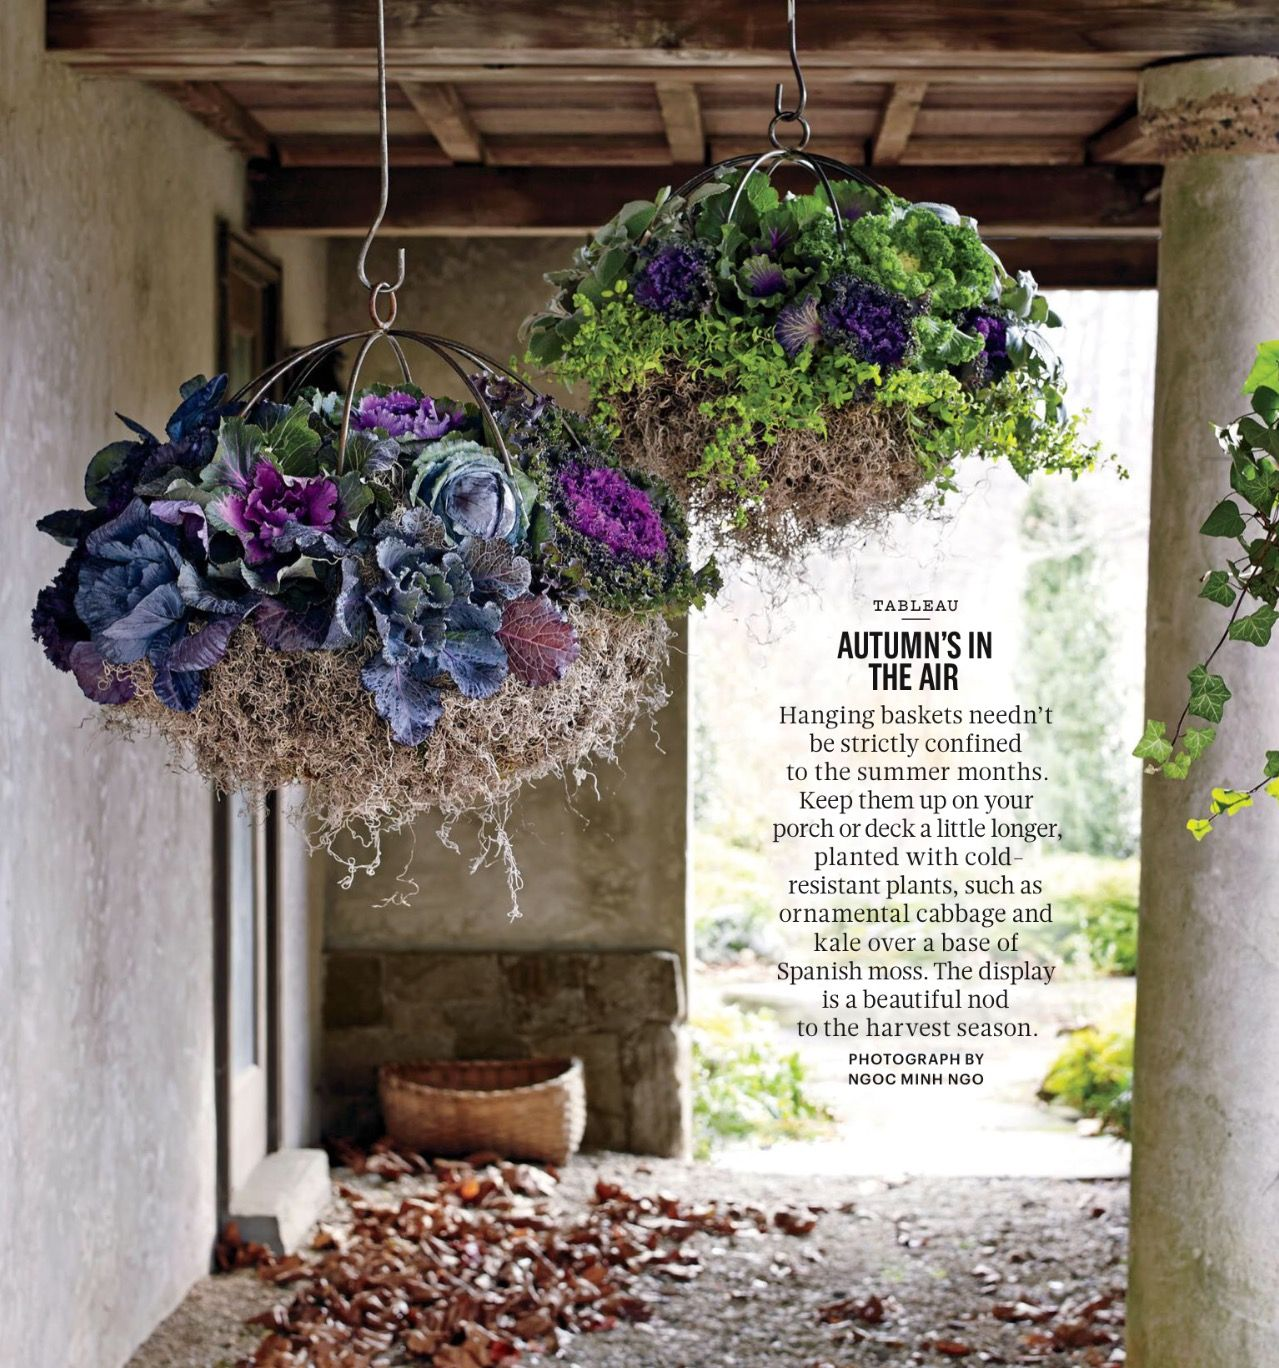 Ornamental Cabbages Hanging Baskets Winter Hanging Baskets Fall Hanging Baskets Hanging Flower Baskets